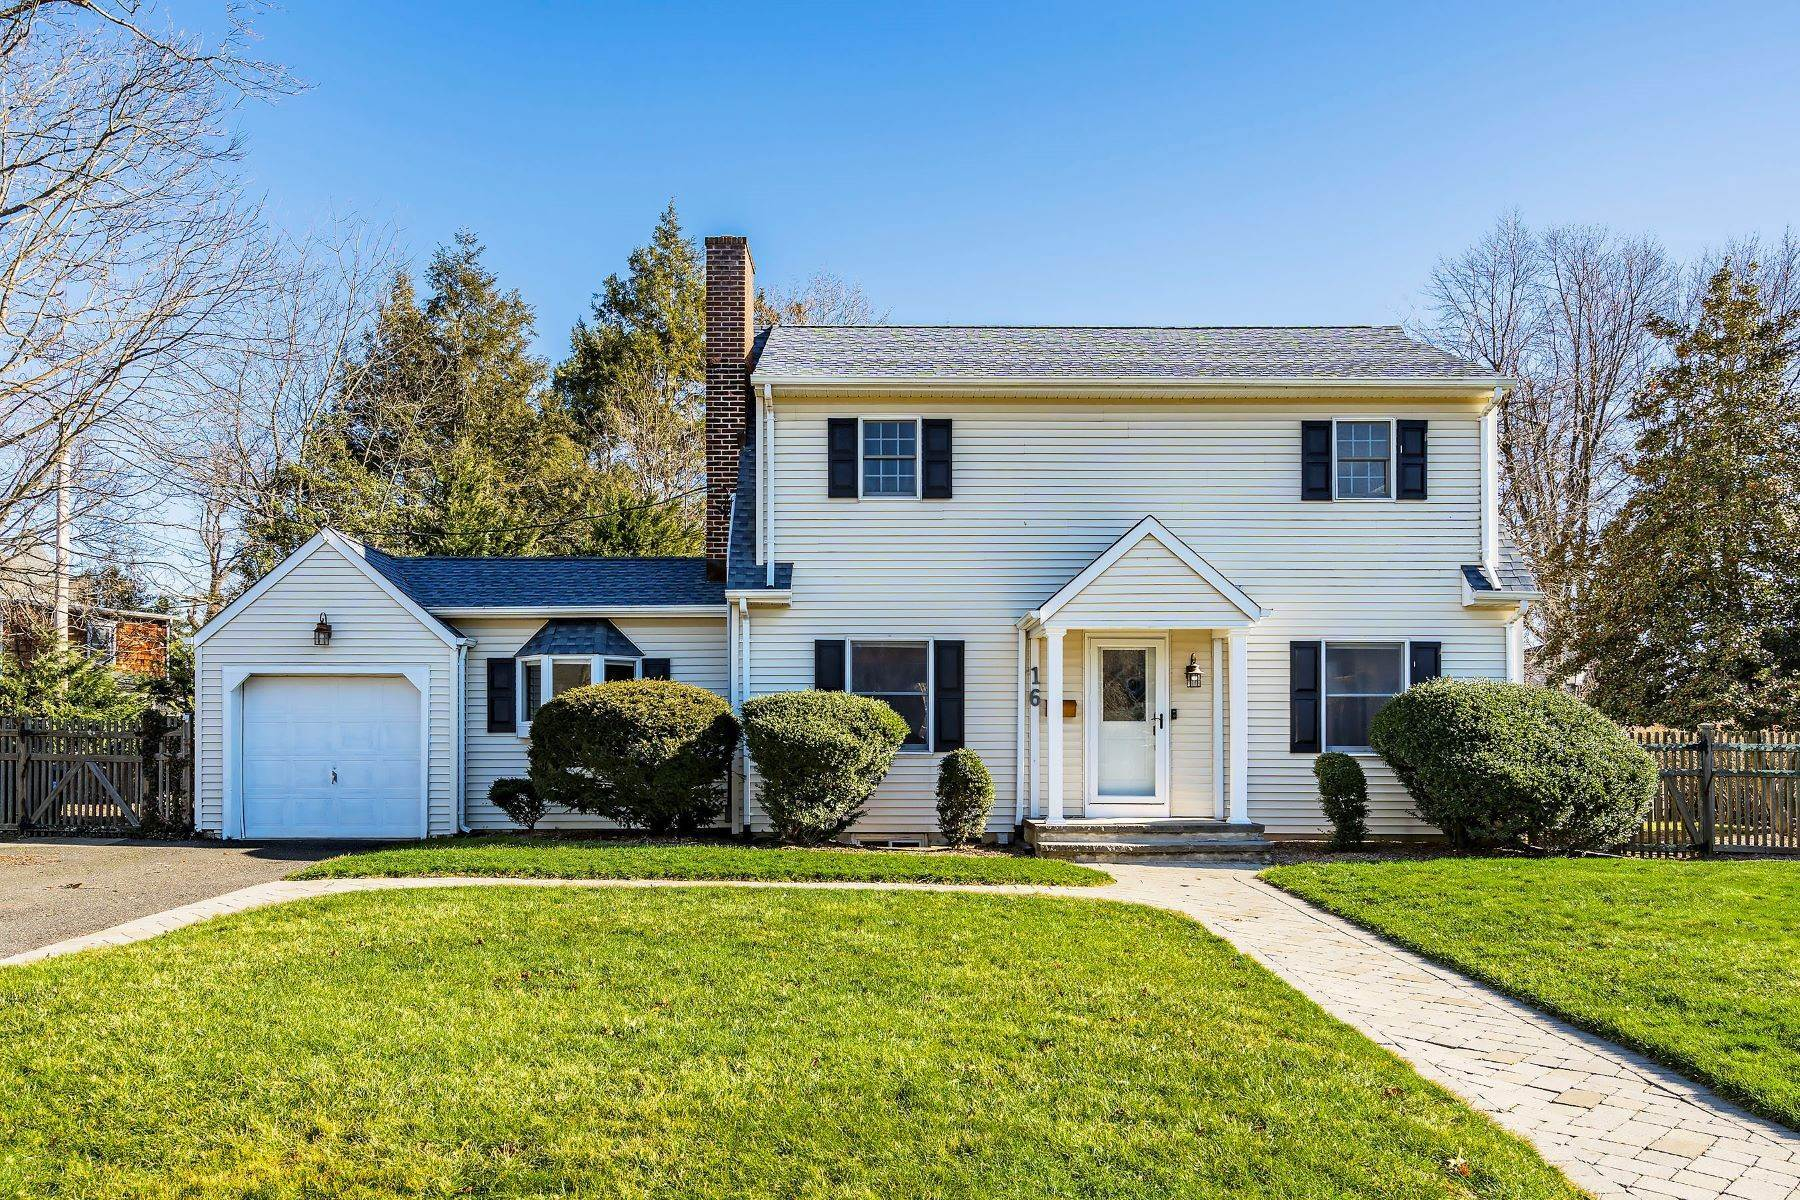 3. Single Family Homes for Sale at Sunnycrest Neighborhood 16 Carlile Terrace Little Silver, New Jersey 07739 United States